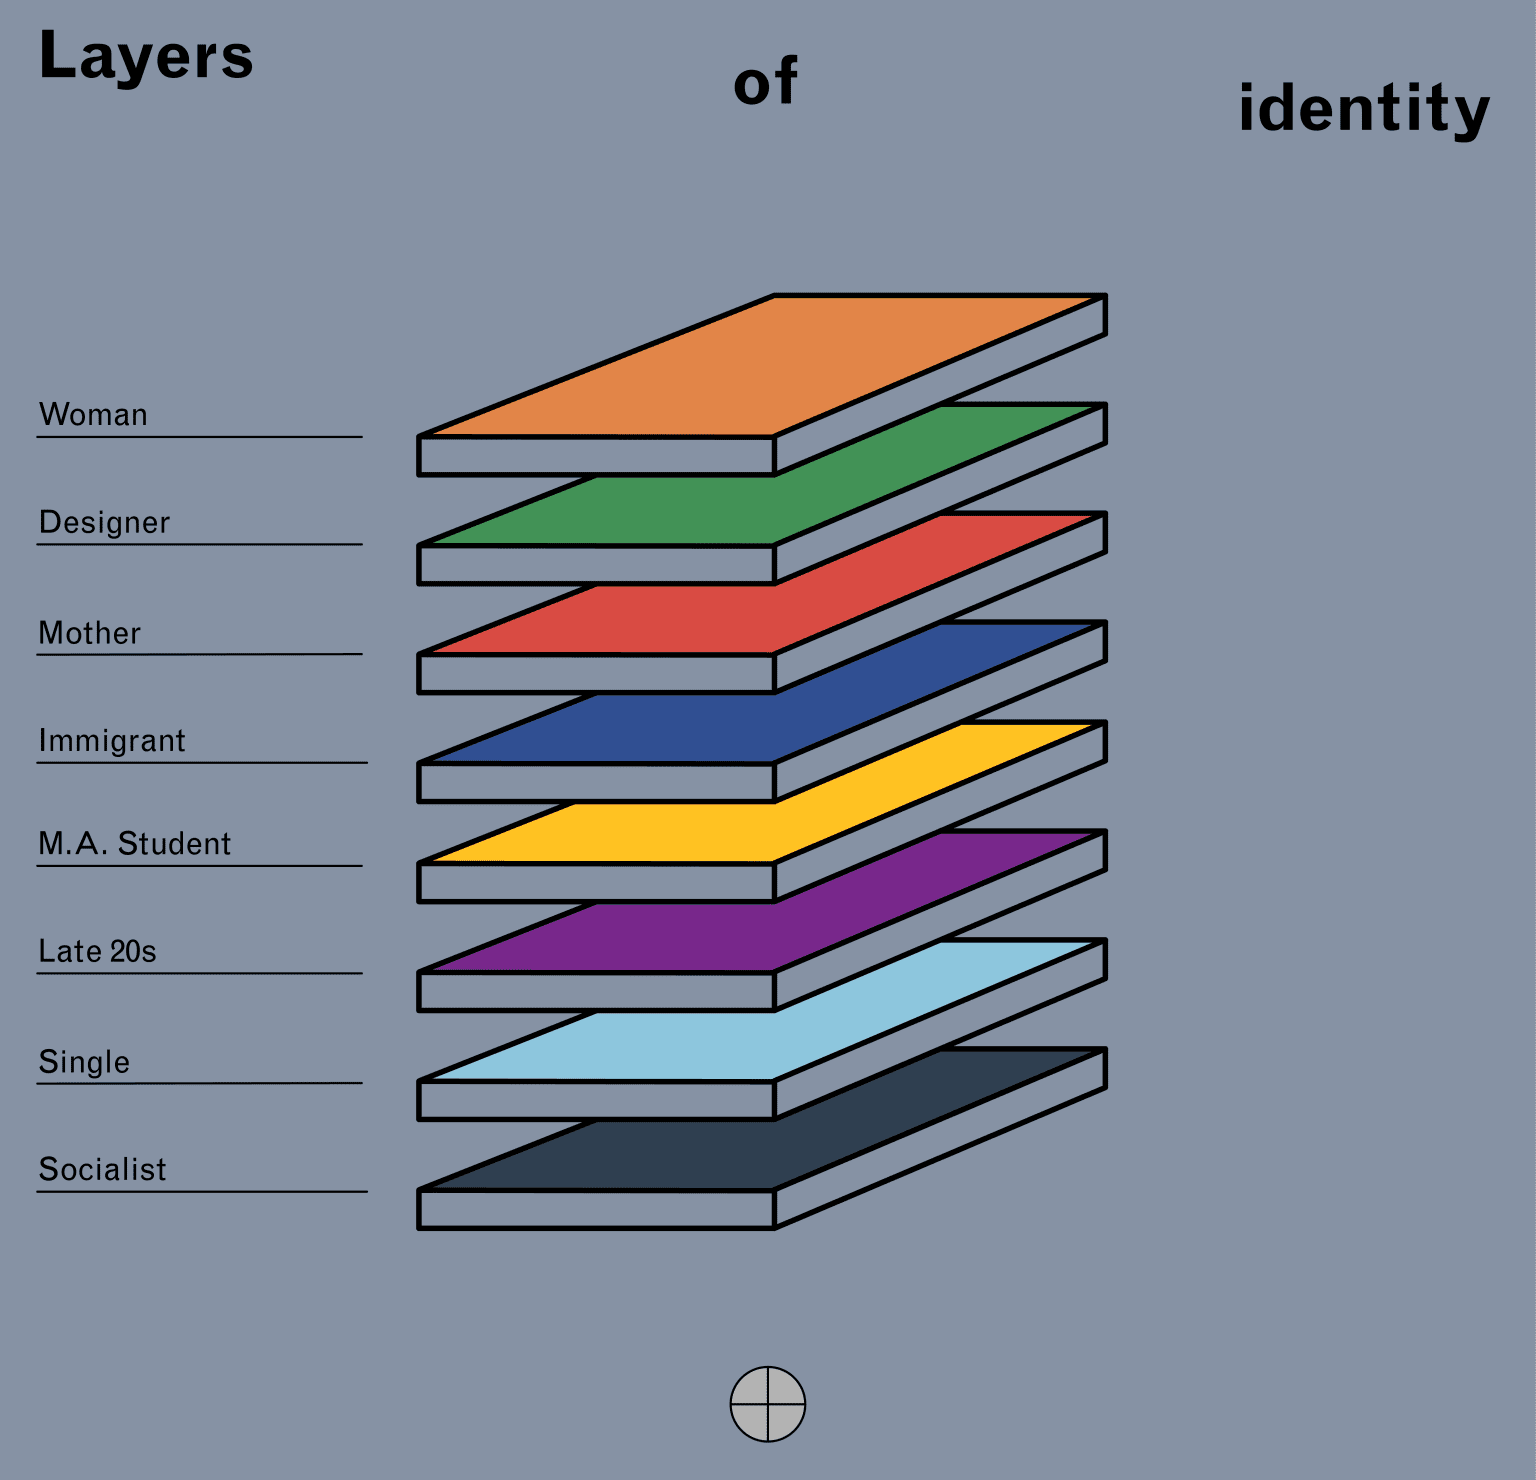 Tools of Introspection: Layers of Identity